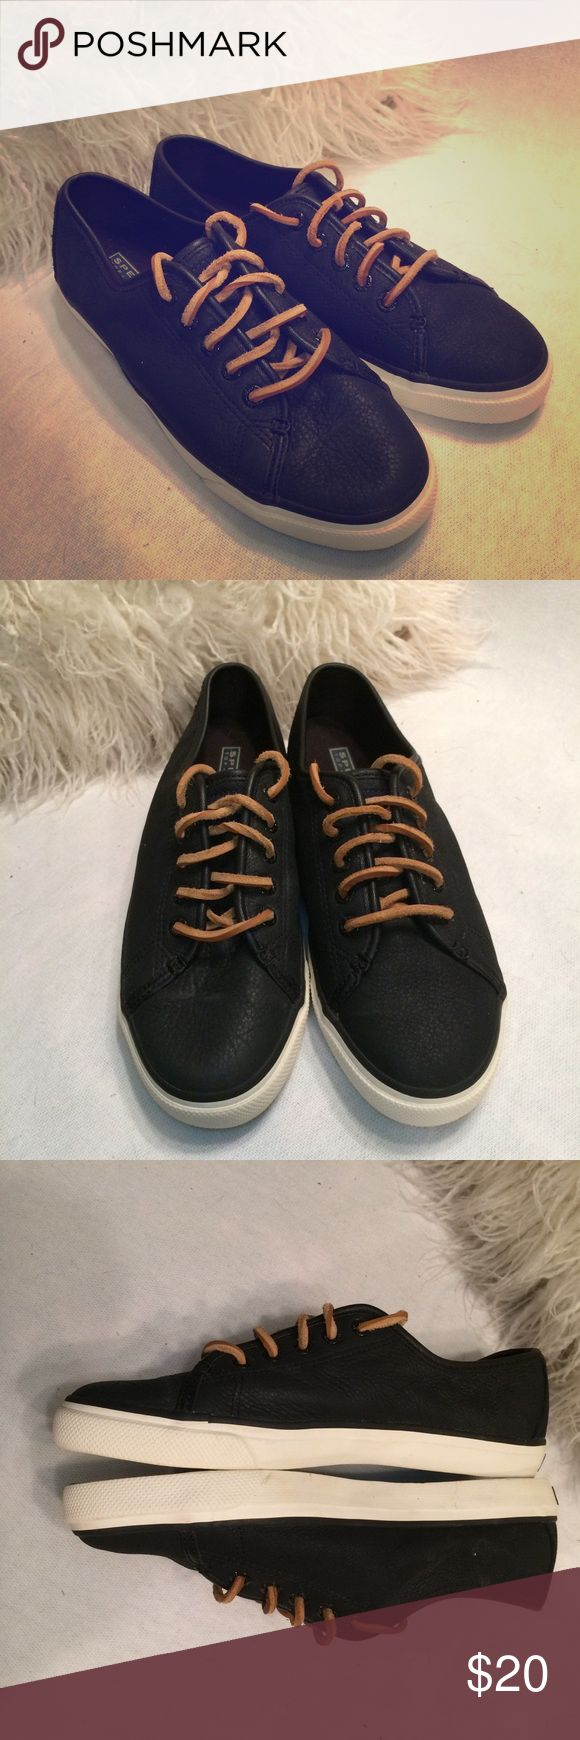 SPERRY TOP SIDER black leather boat shoes SZ 8.5 Cool shoes. All leather, split leather laces. Very clean and in good shape. Signs of wear on soles, but that's about it!  Black, size 8.5 M Sperry Top-Sider Shoes Sneakers